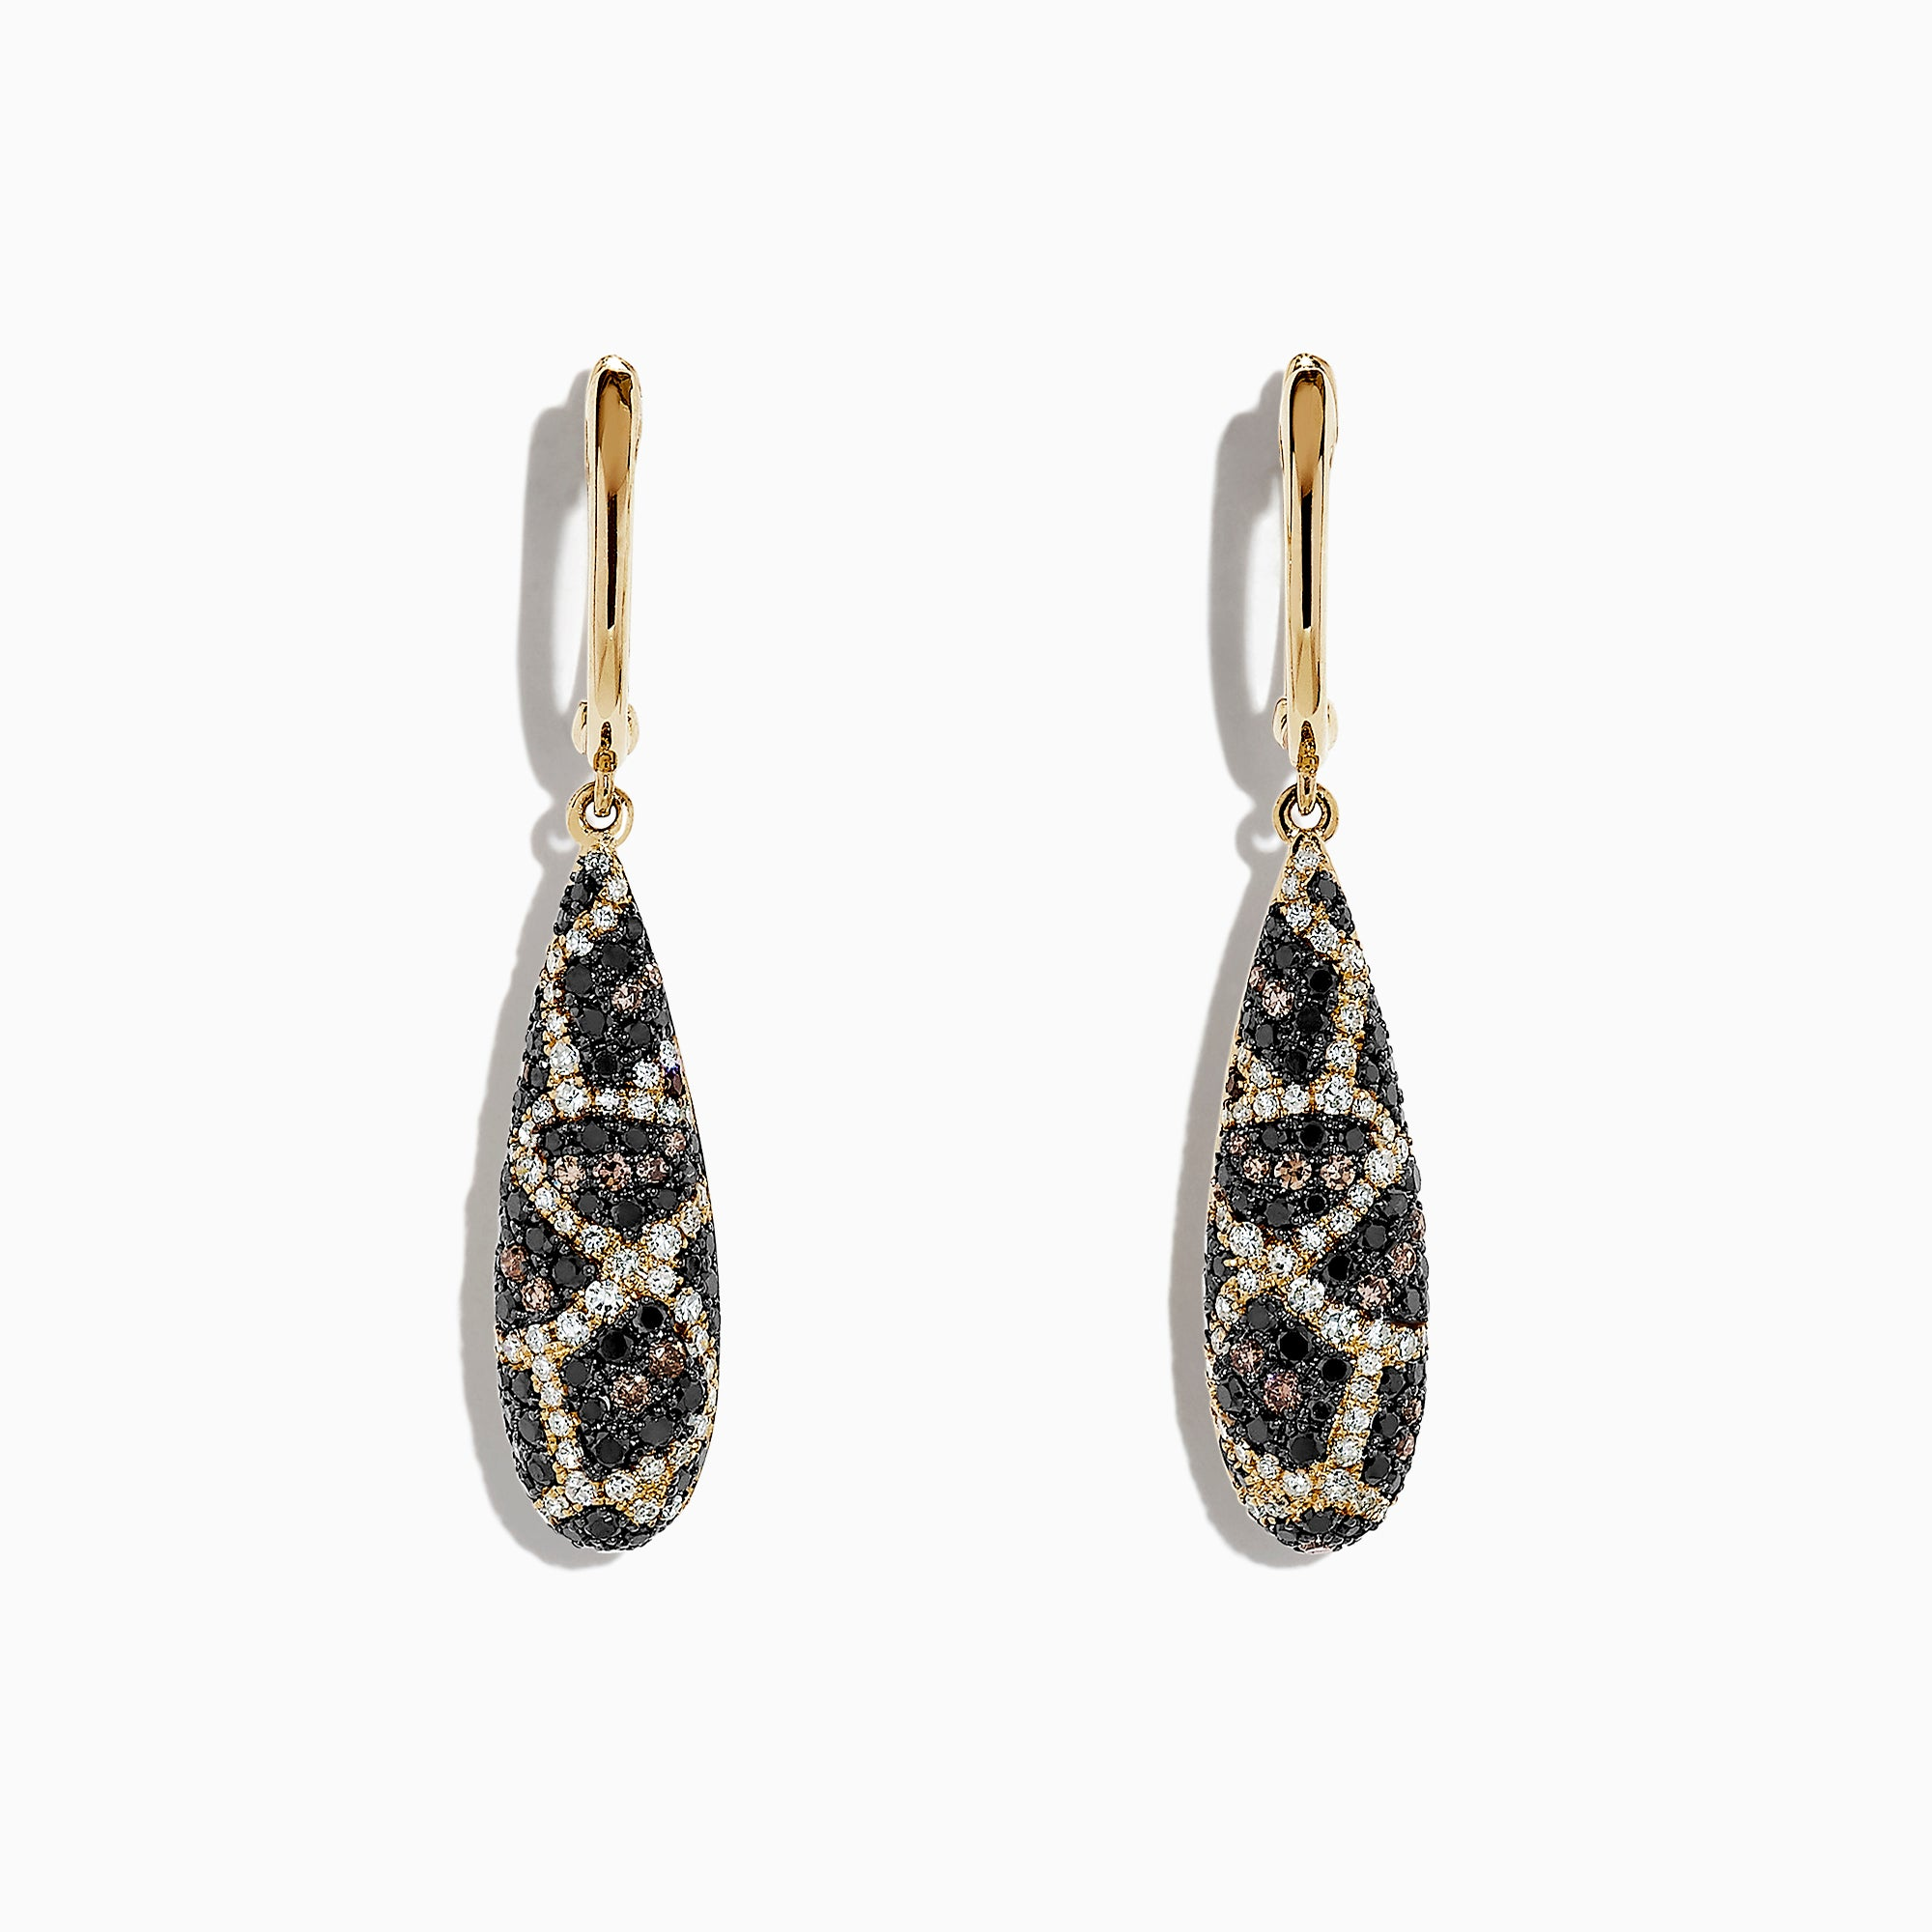 Effy 14K Yellow Gold Espresso, Black and White Diamond Earrings, 1.26 TCW